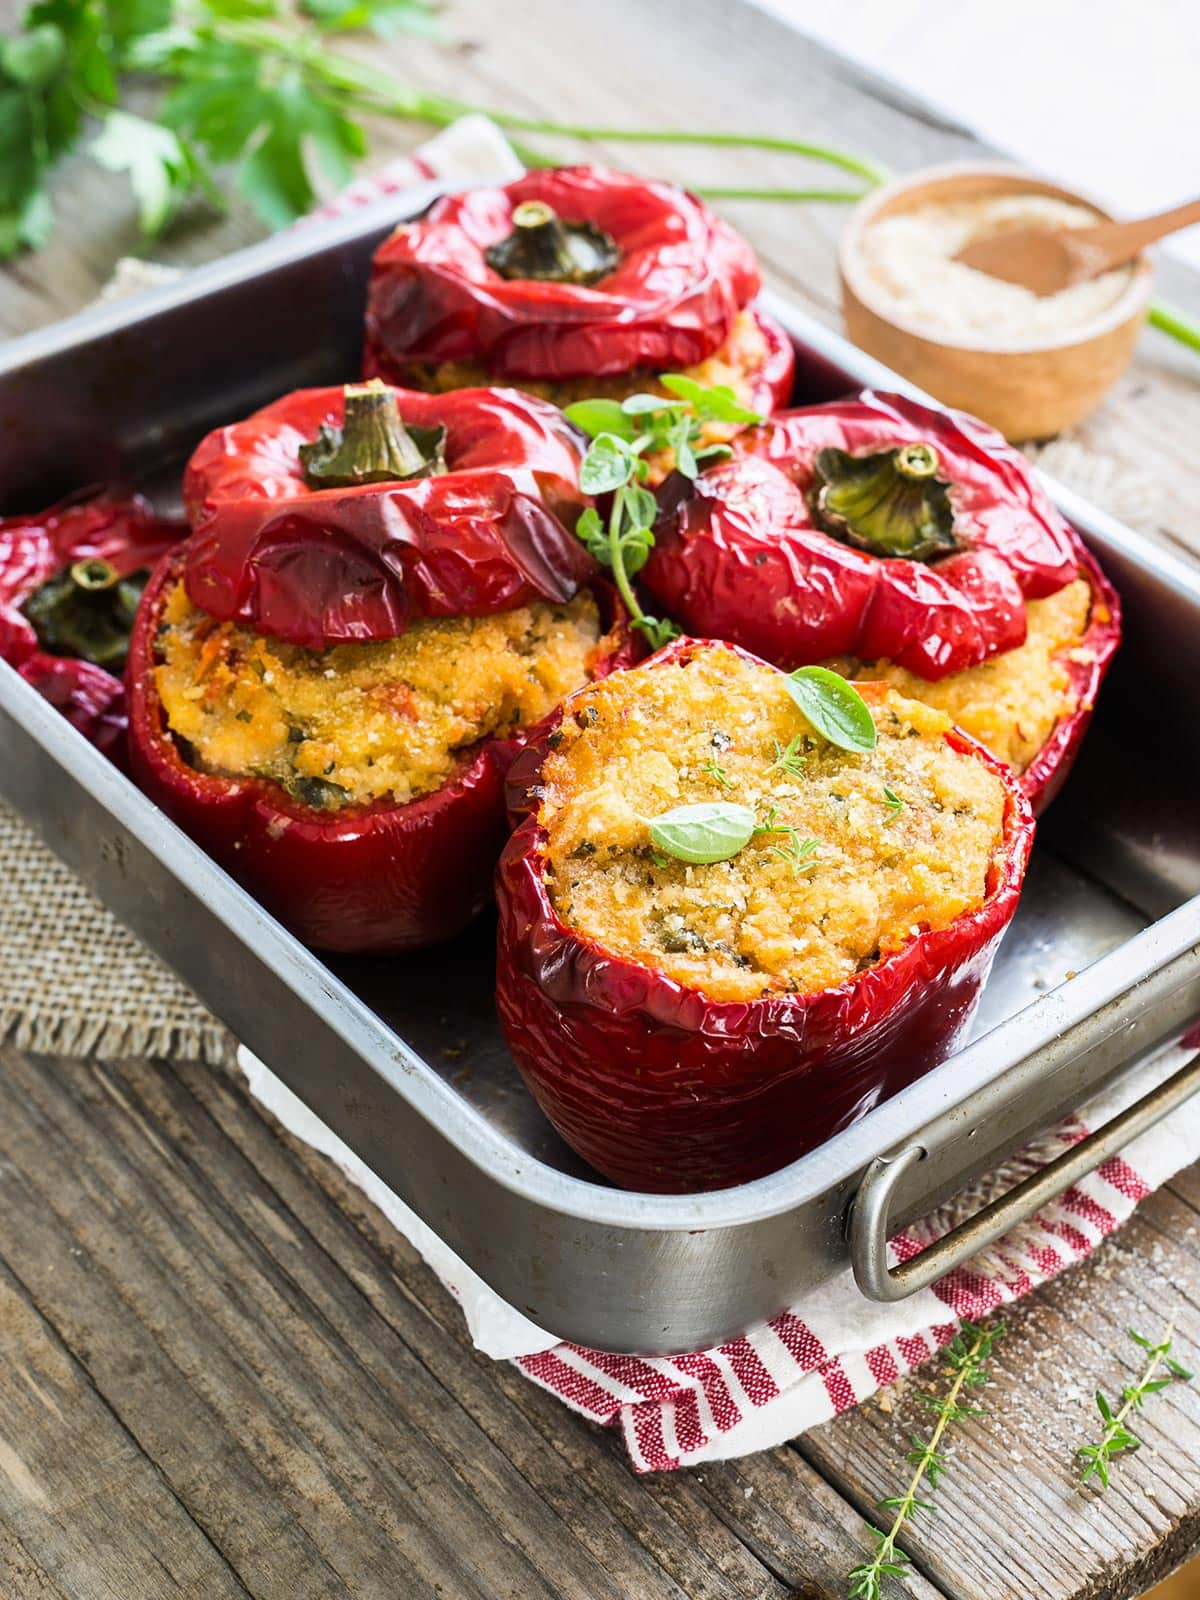 Italian peppers stuffed with breadcrumbs on a baking dish.